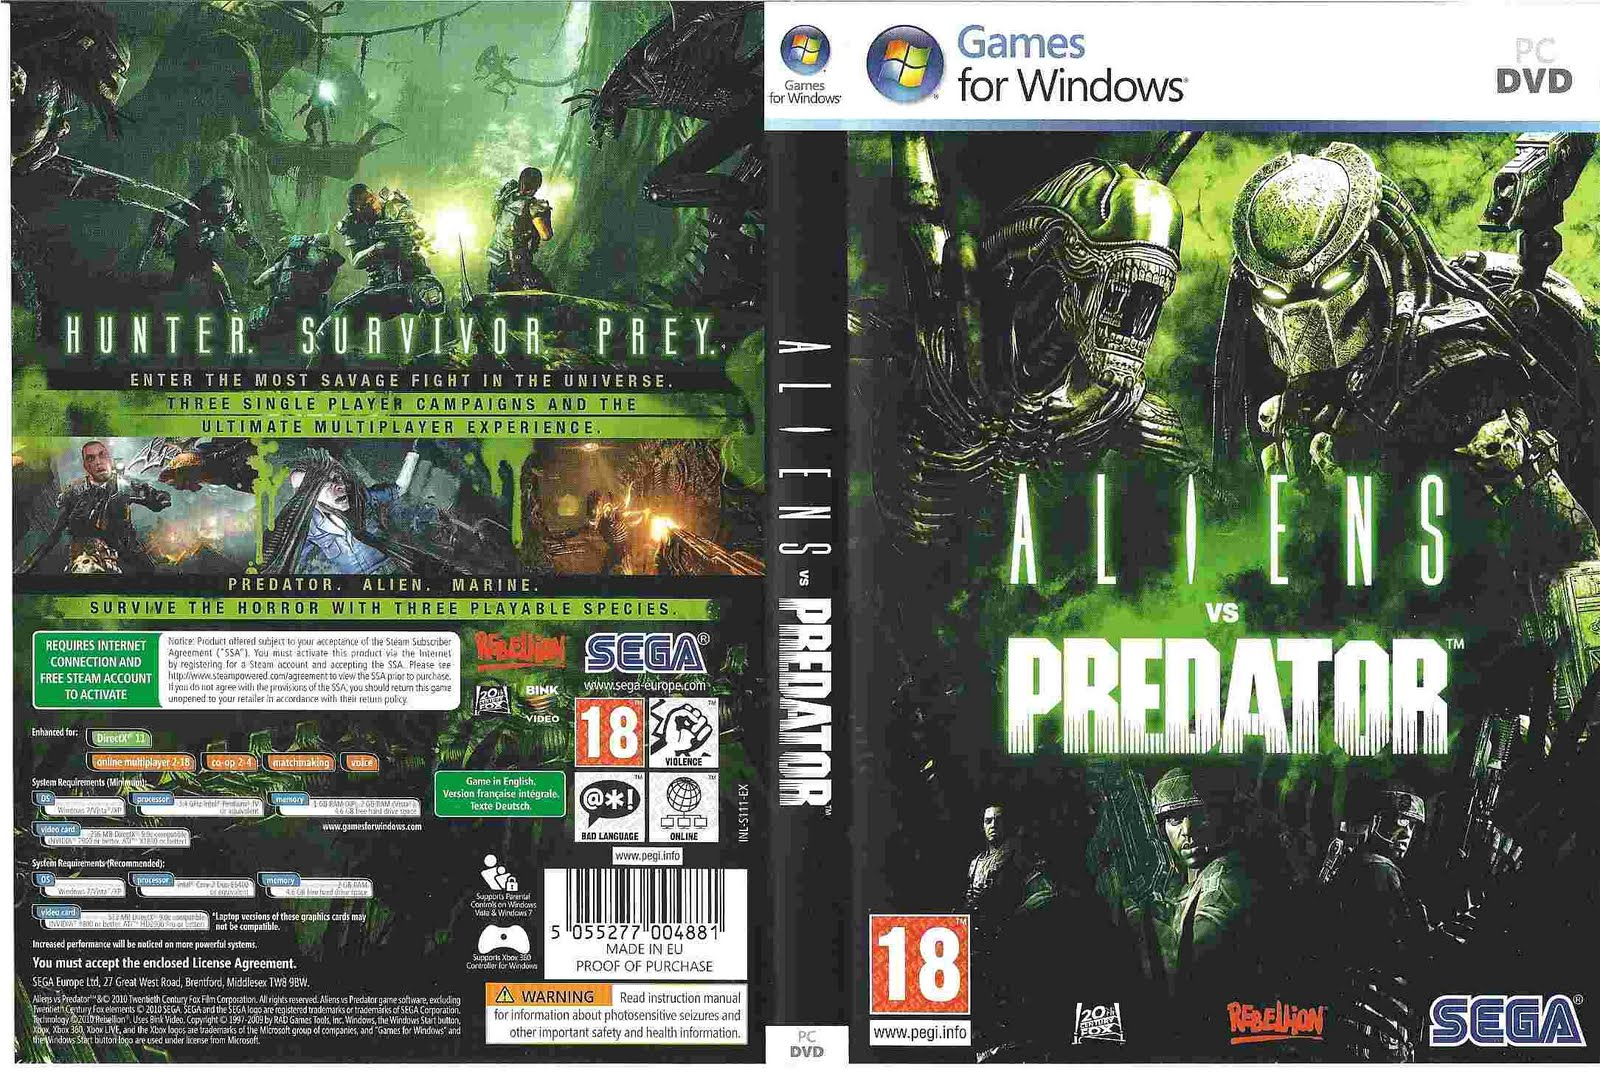 Download Free Cover DVD PC Games | Movies | PSP